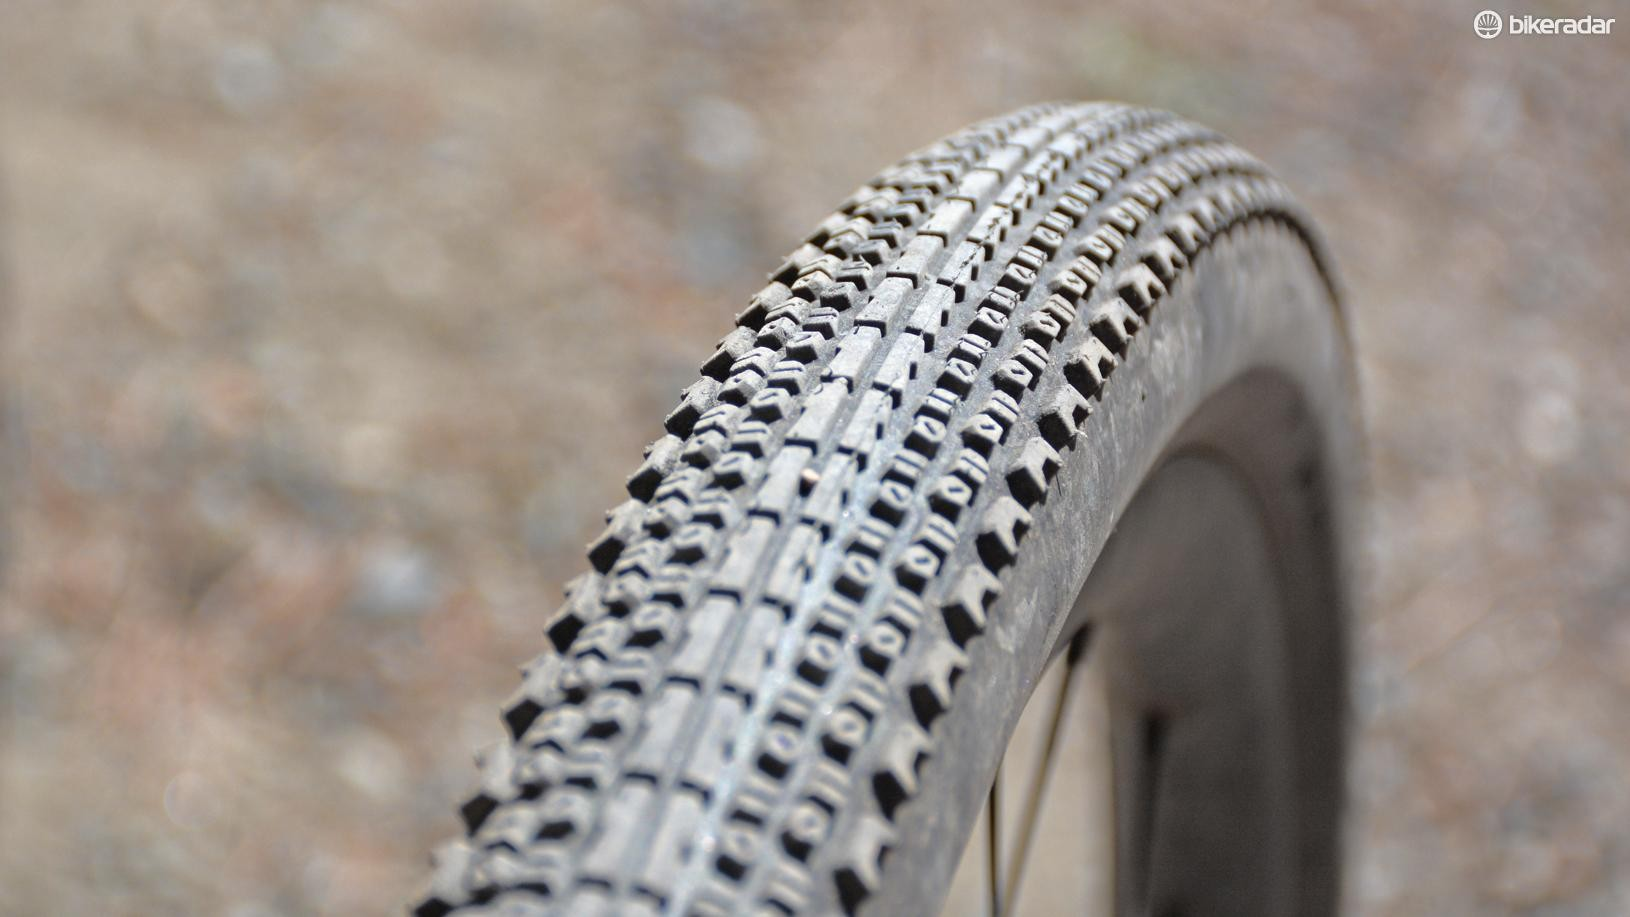 Kenda's Flintridge Pro is fast, confidence-inspiring and has excellent puncture protection